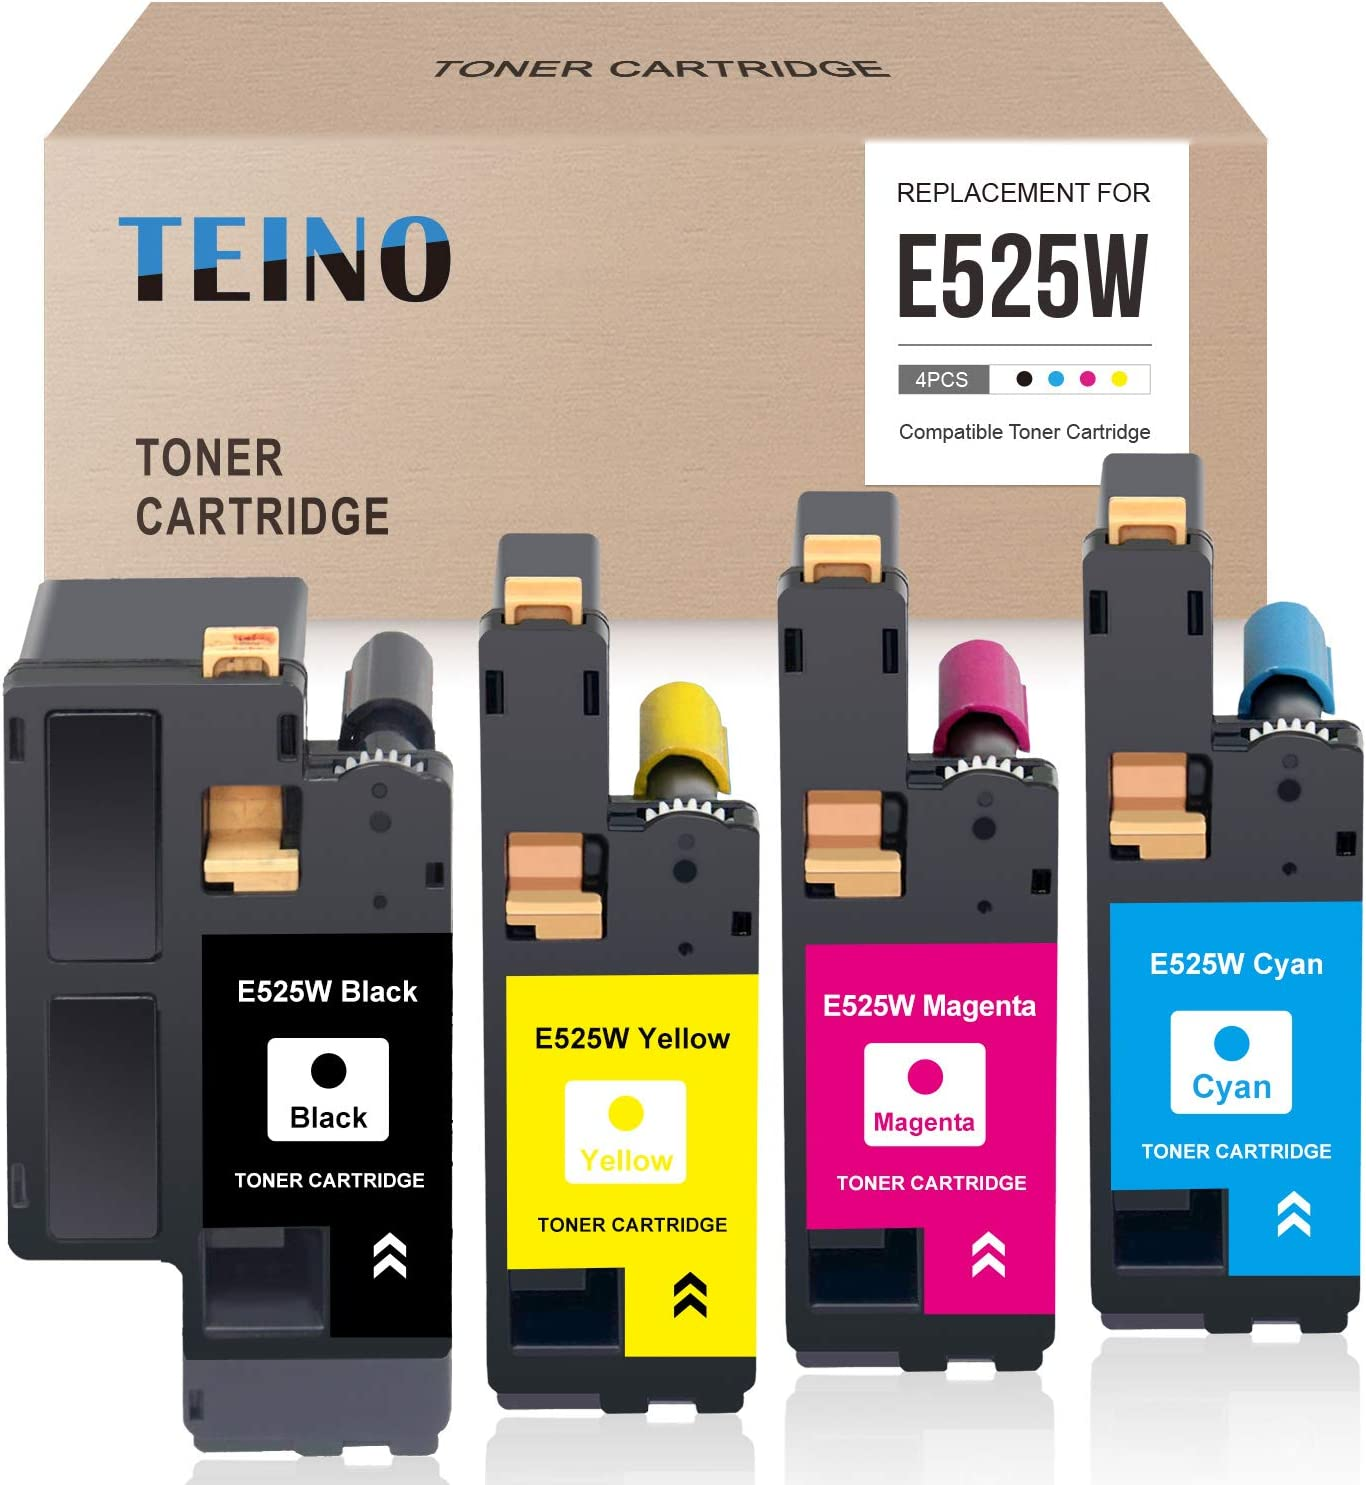 TEINO Compatible High Yield Toner Cartridge Replacement for Dell E525W E525 525W ues with Dell E525W Wireless Color Printer (Black, Cyan, Magenta, Yellow, 4-Pack)